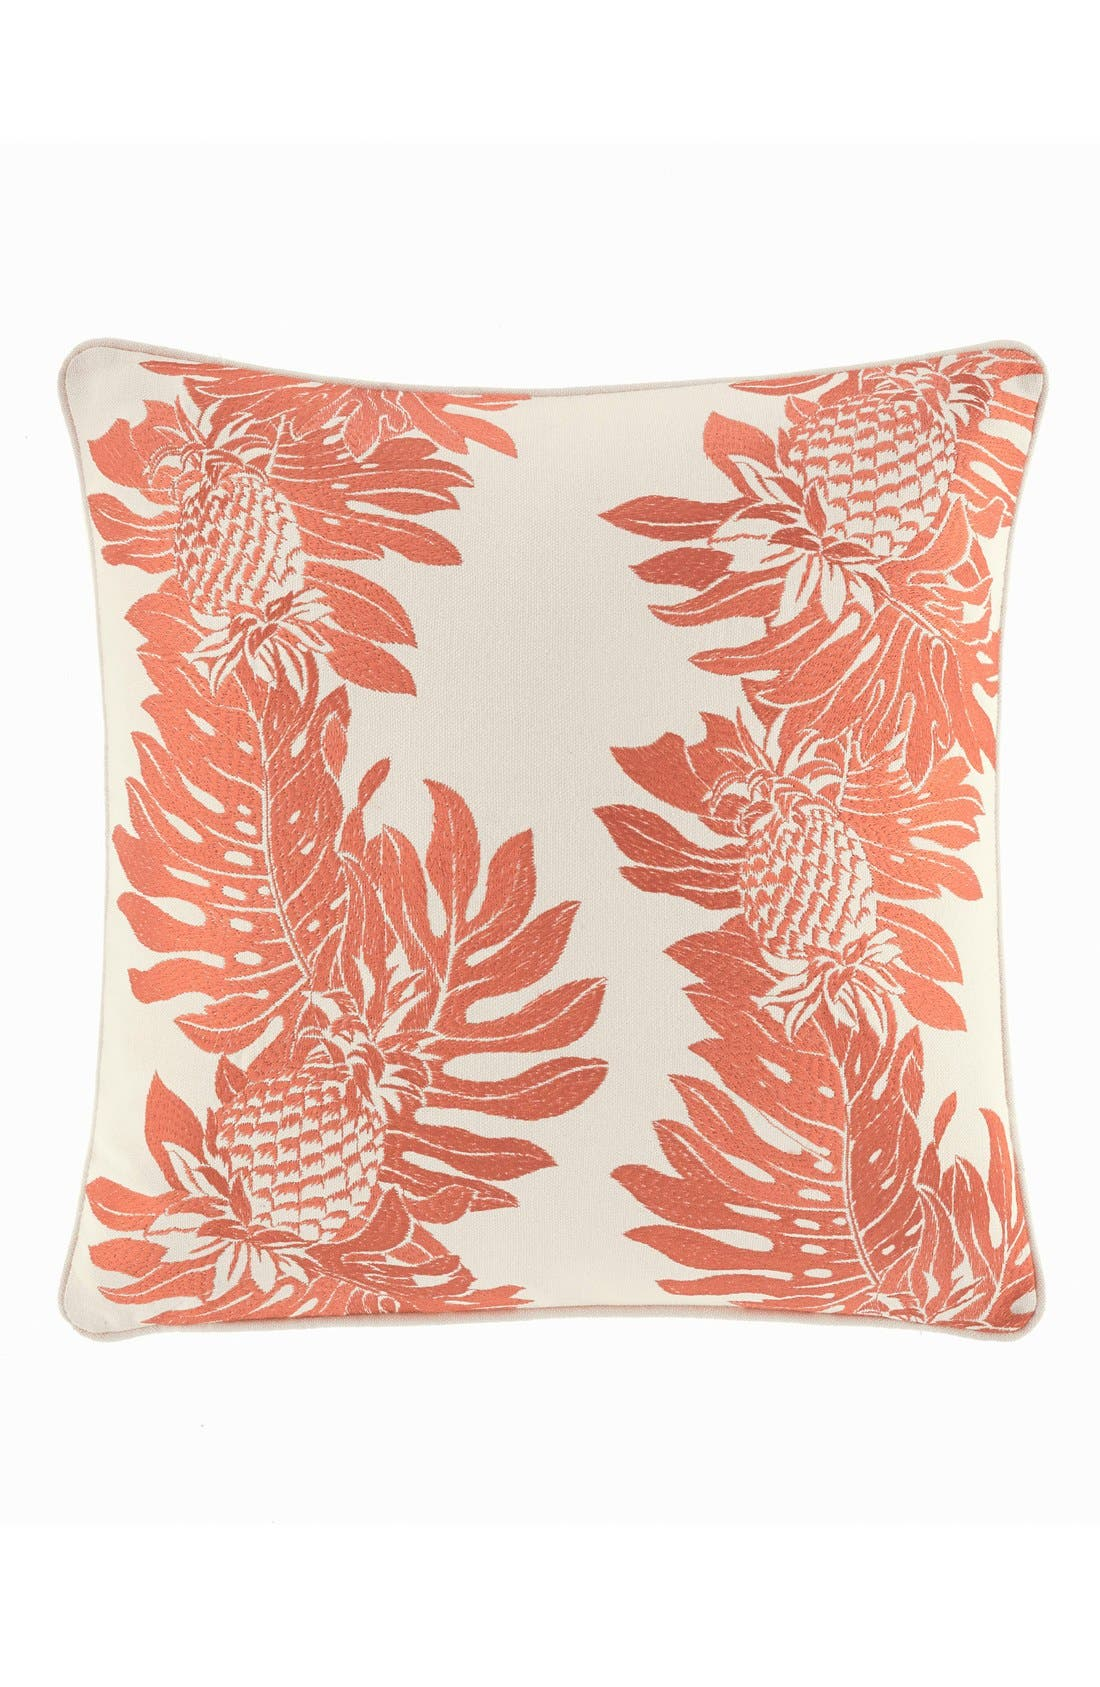 'Pineapple' Accent Pillow,                         Main,                         color, 865